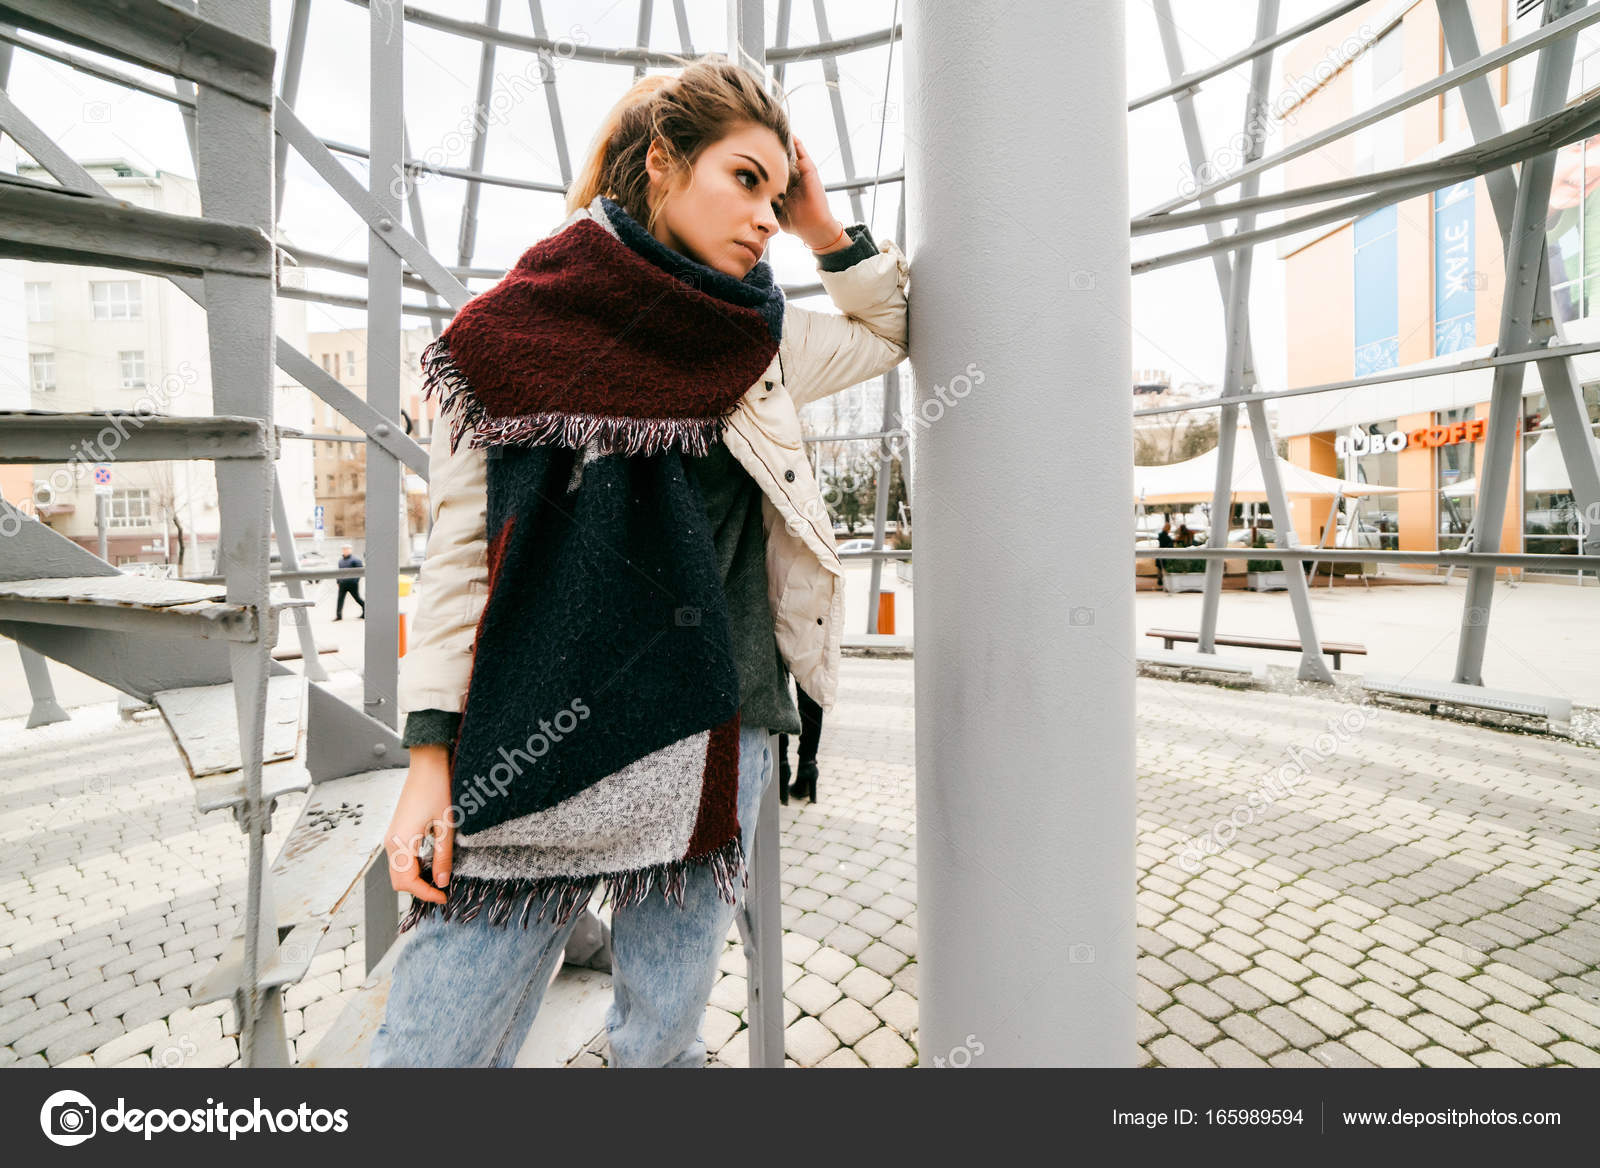 A Beautiful Girl In A Scarf With Blond Hair Pondered Leaned Against A Pillar In The Building Against The Backdrop Of A Staircase Photo By